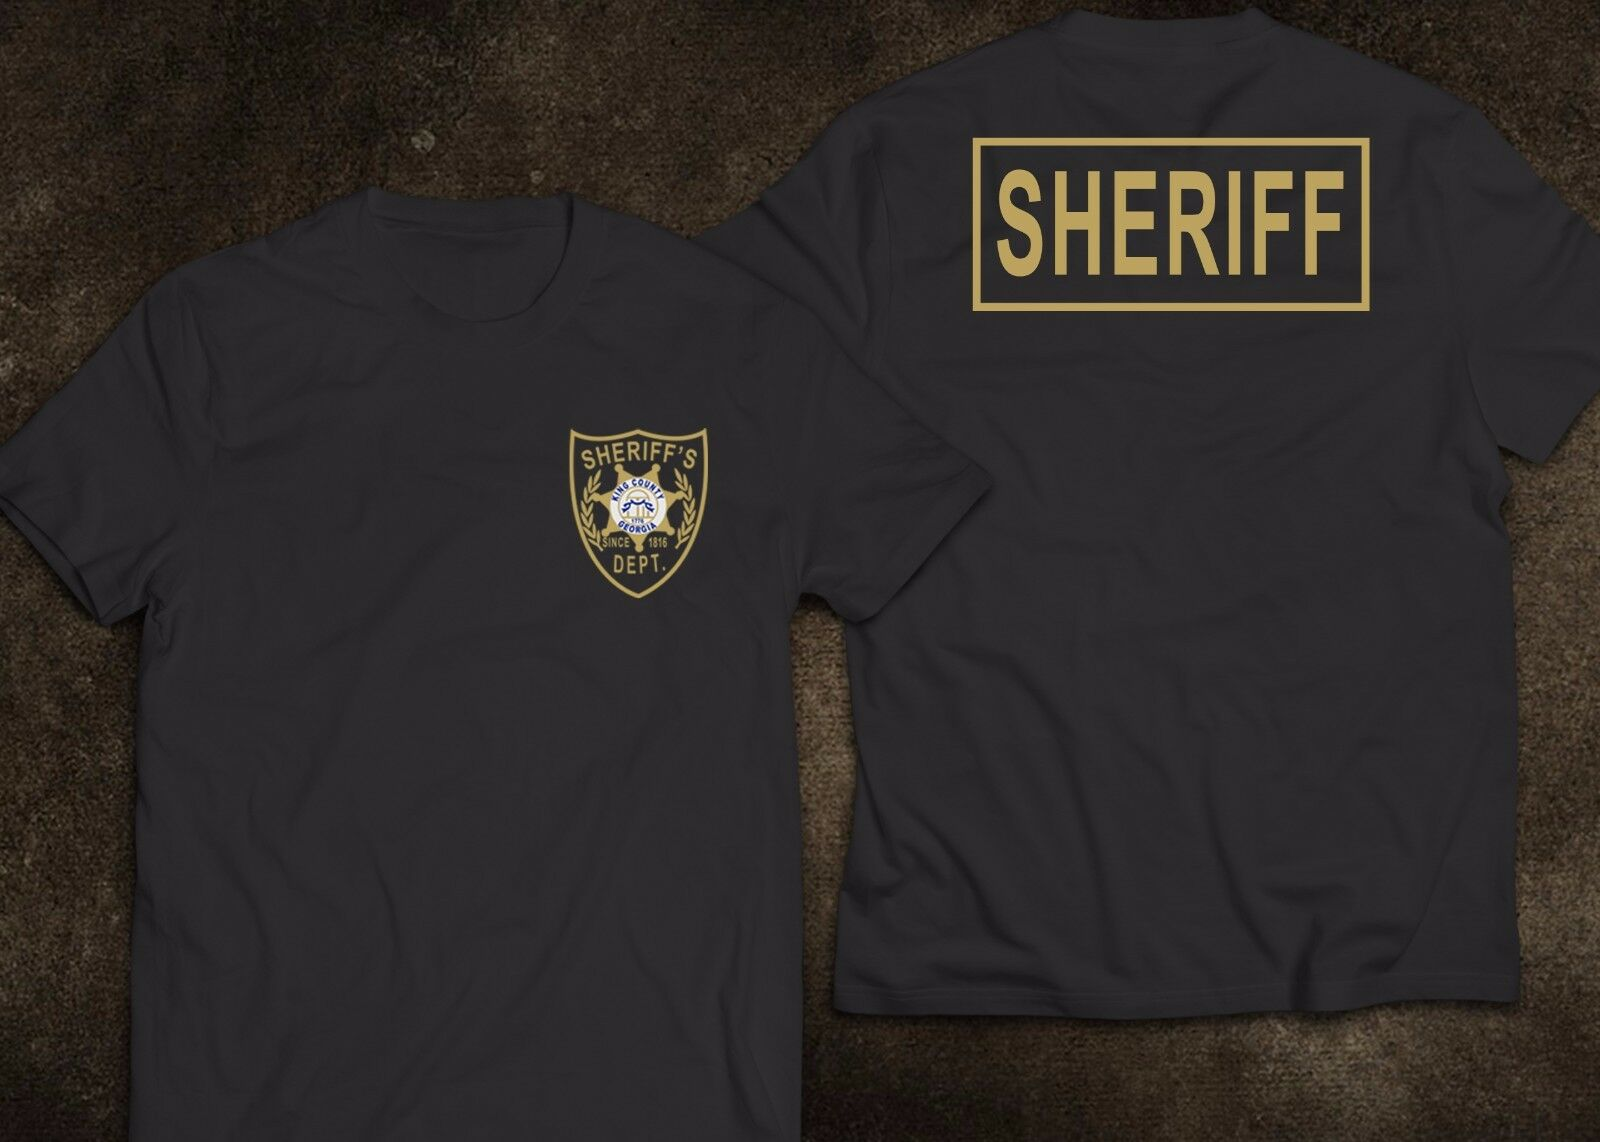 2019 Funny New Sheriff King County Georgia Police United States The Walking Dead T-Shirt Double Side Unisex Tee